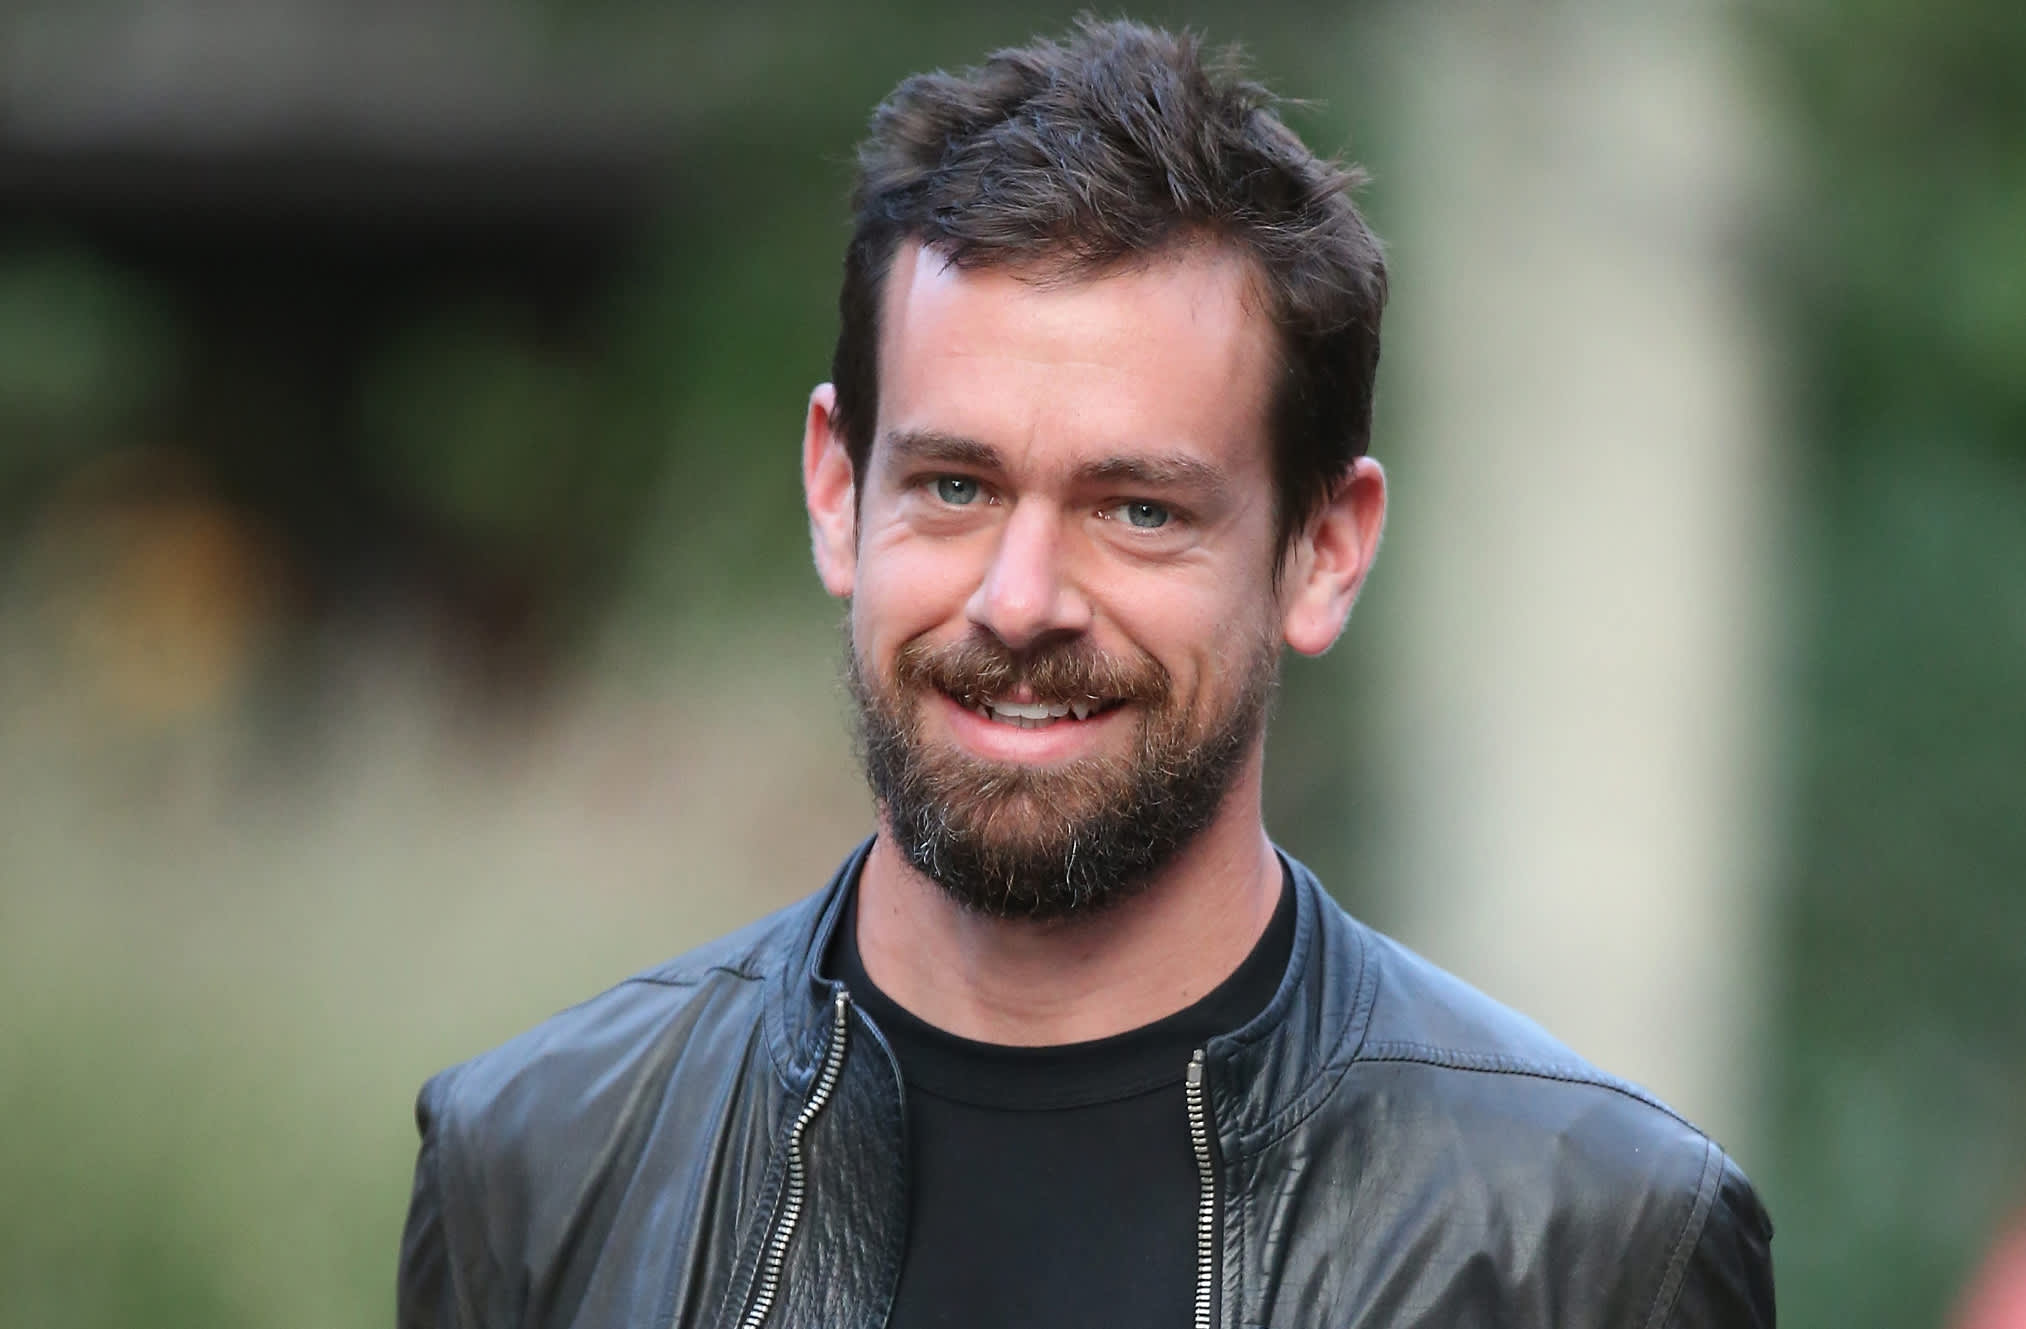 Jack Dorsey Says The Best Investment He Ever Made Cost Him Nothing